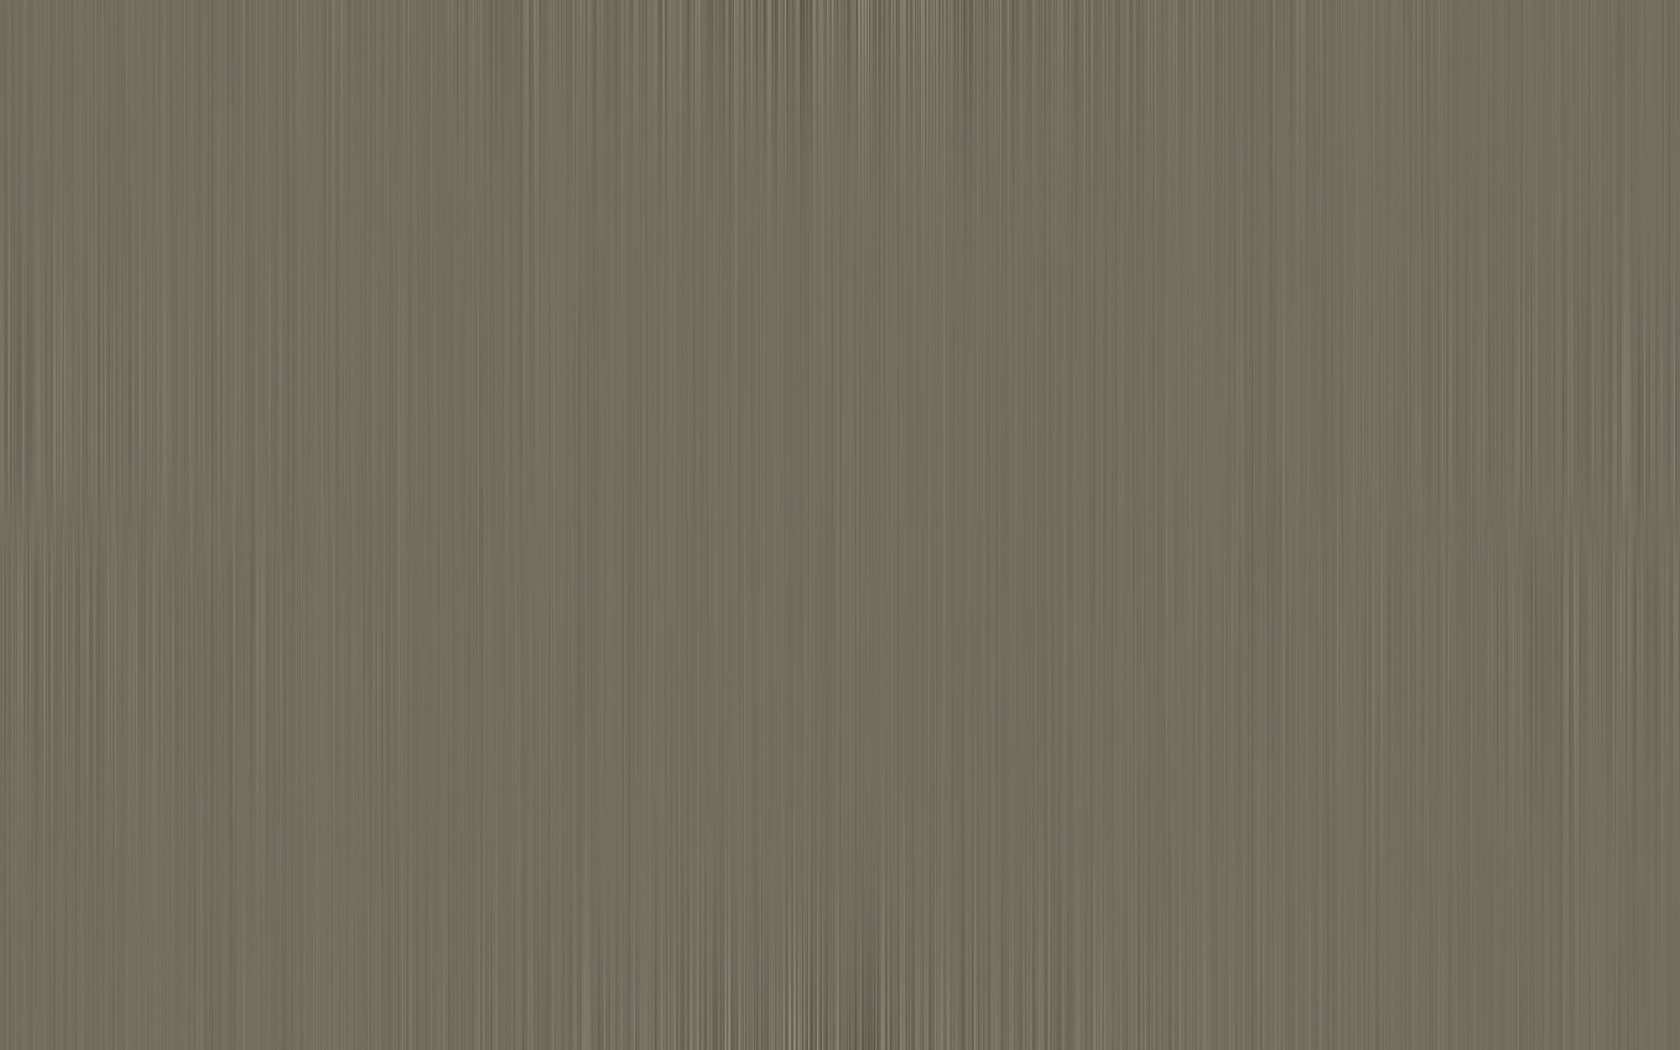 brushed:stripes light whatever by 10r